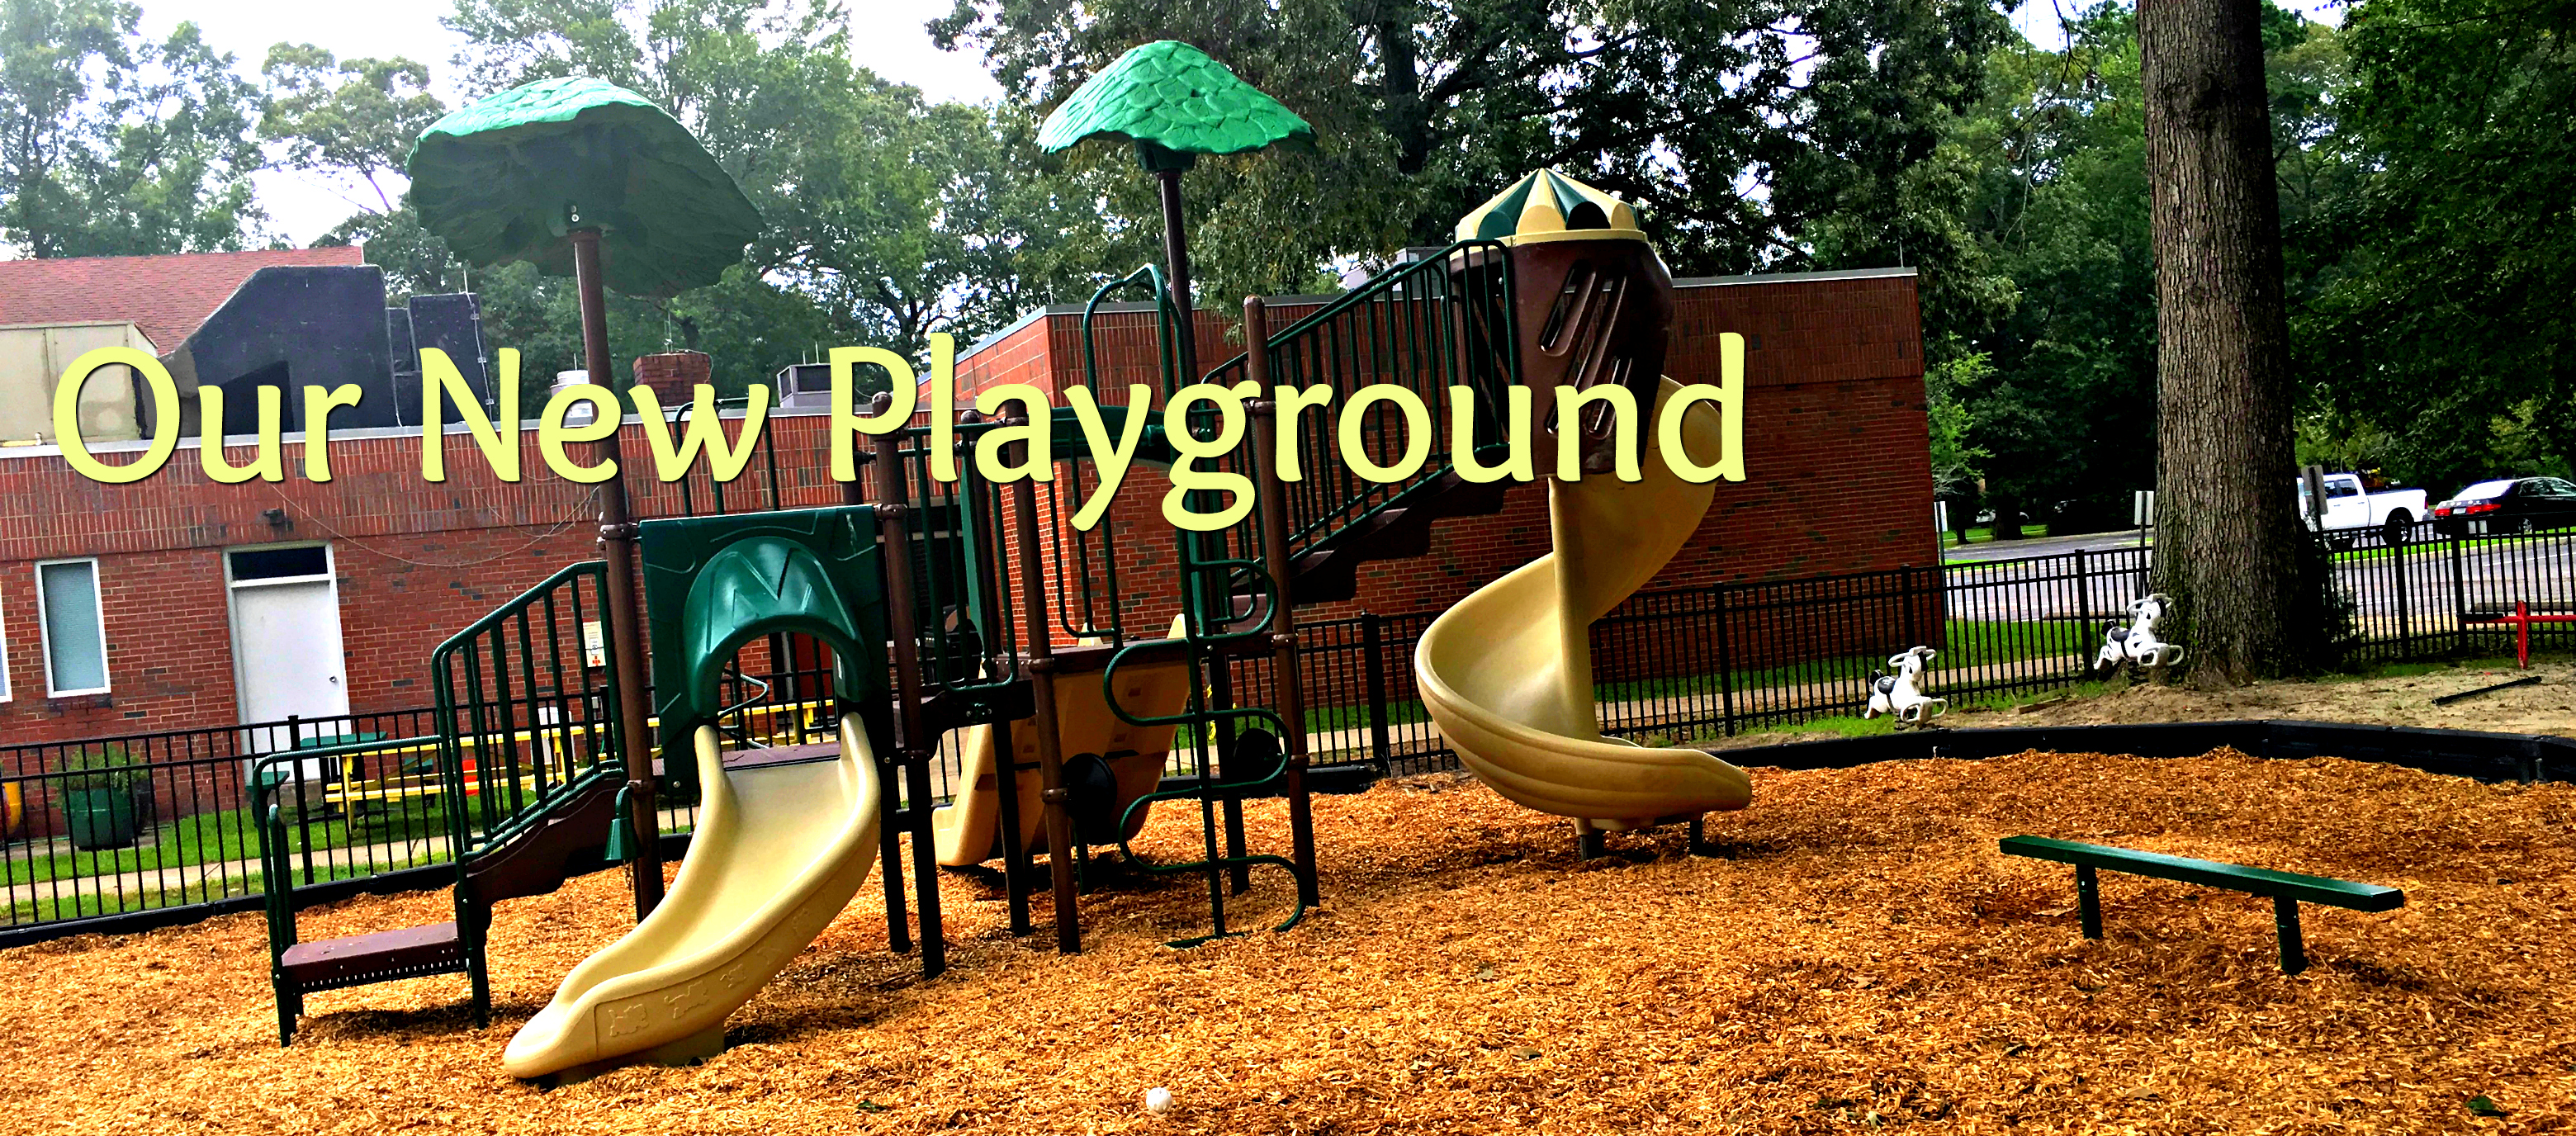 playground-banner-w-words